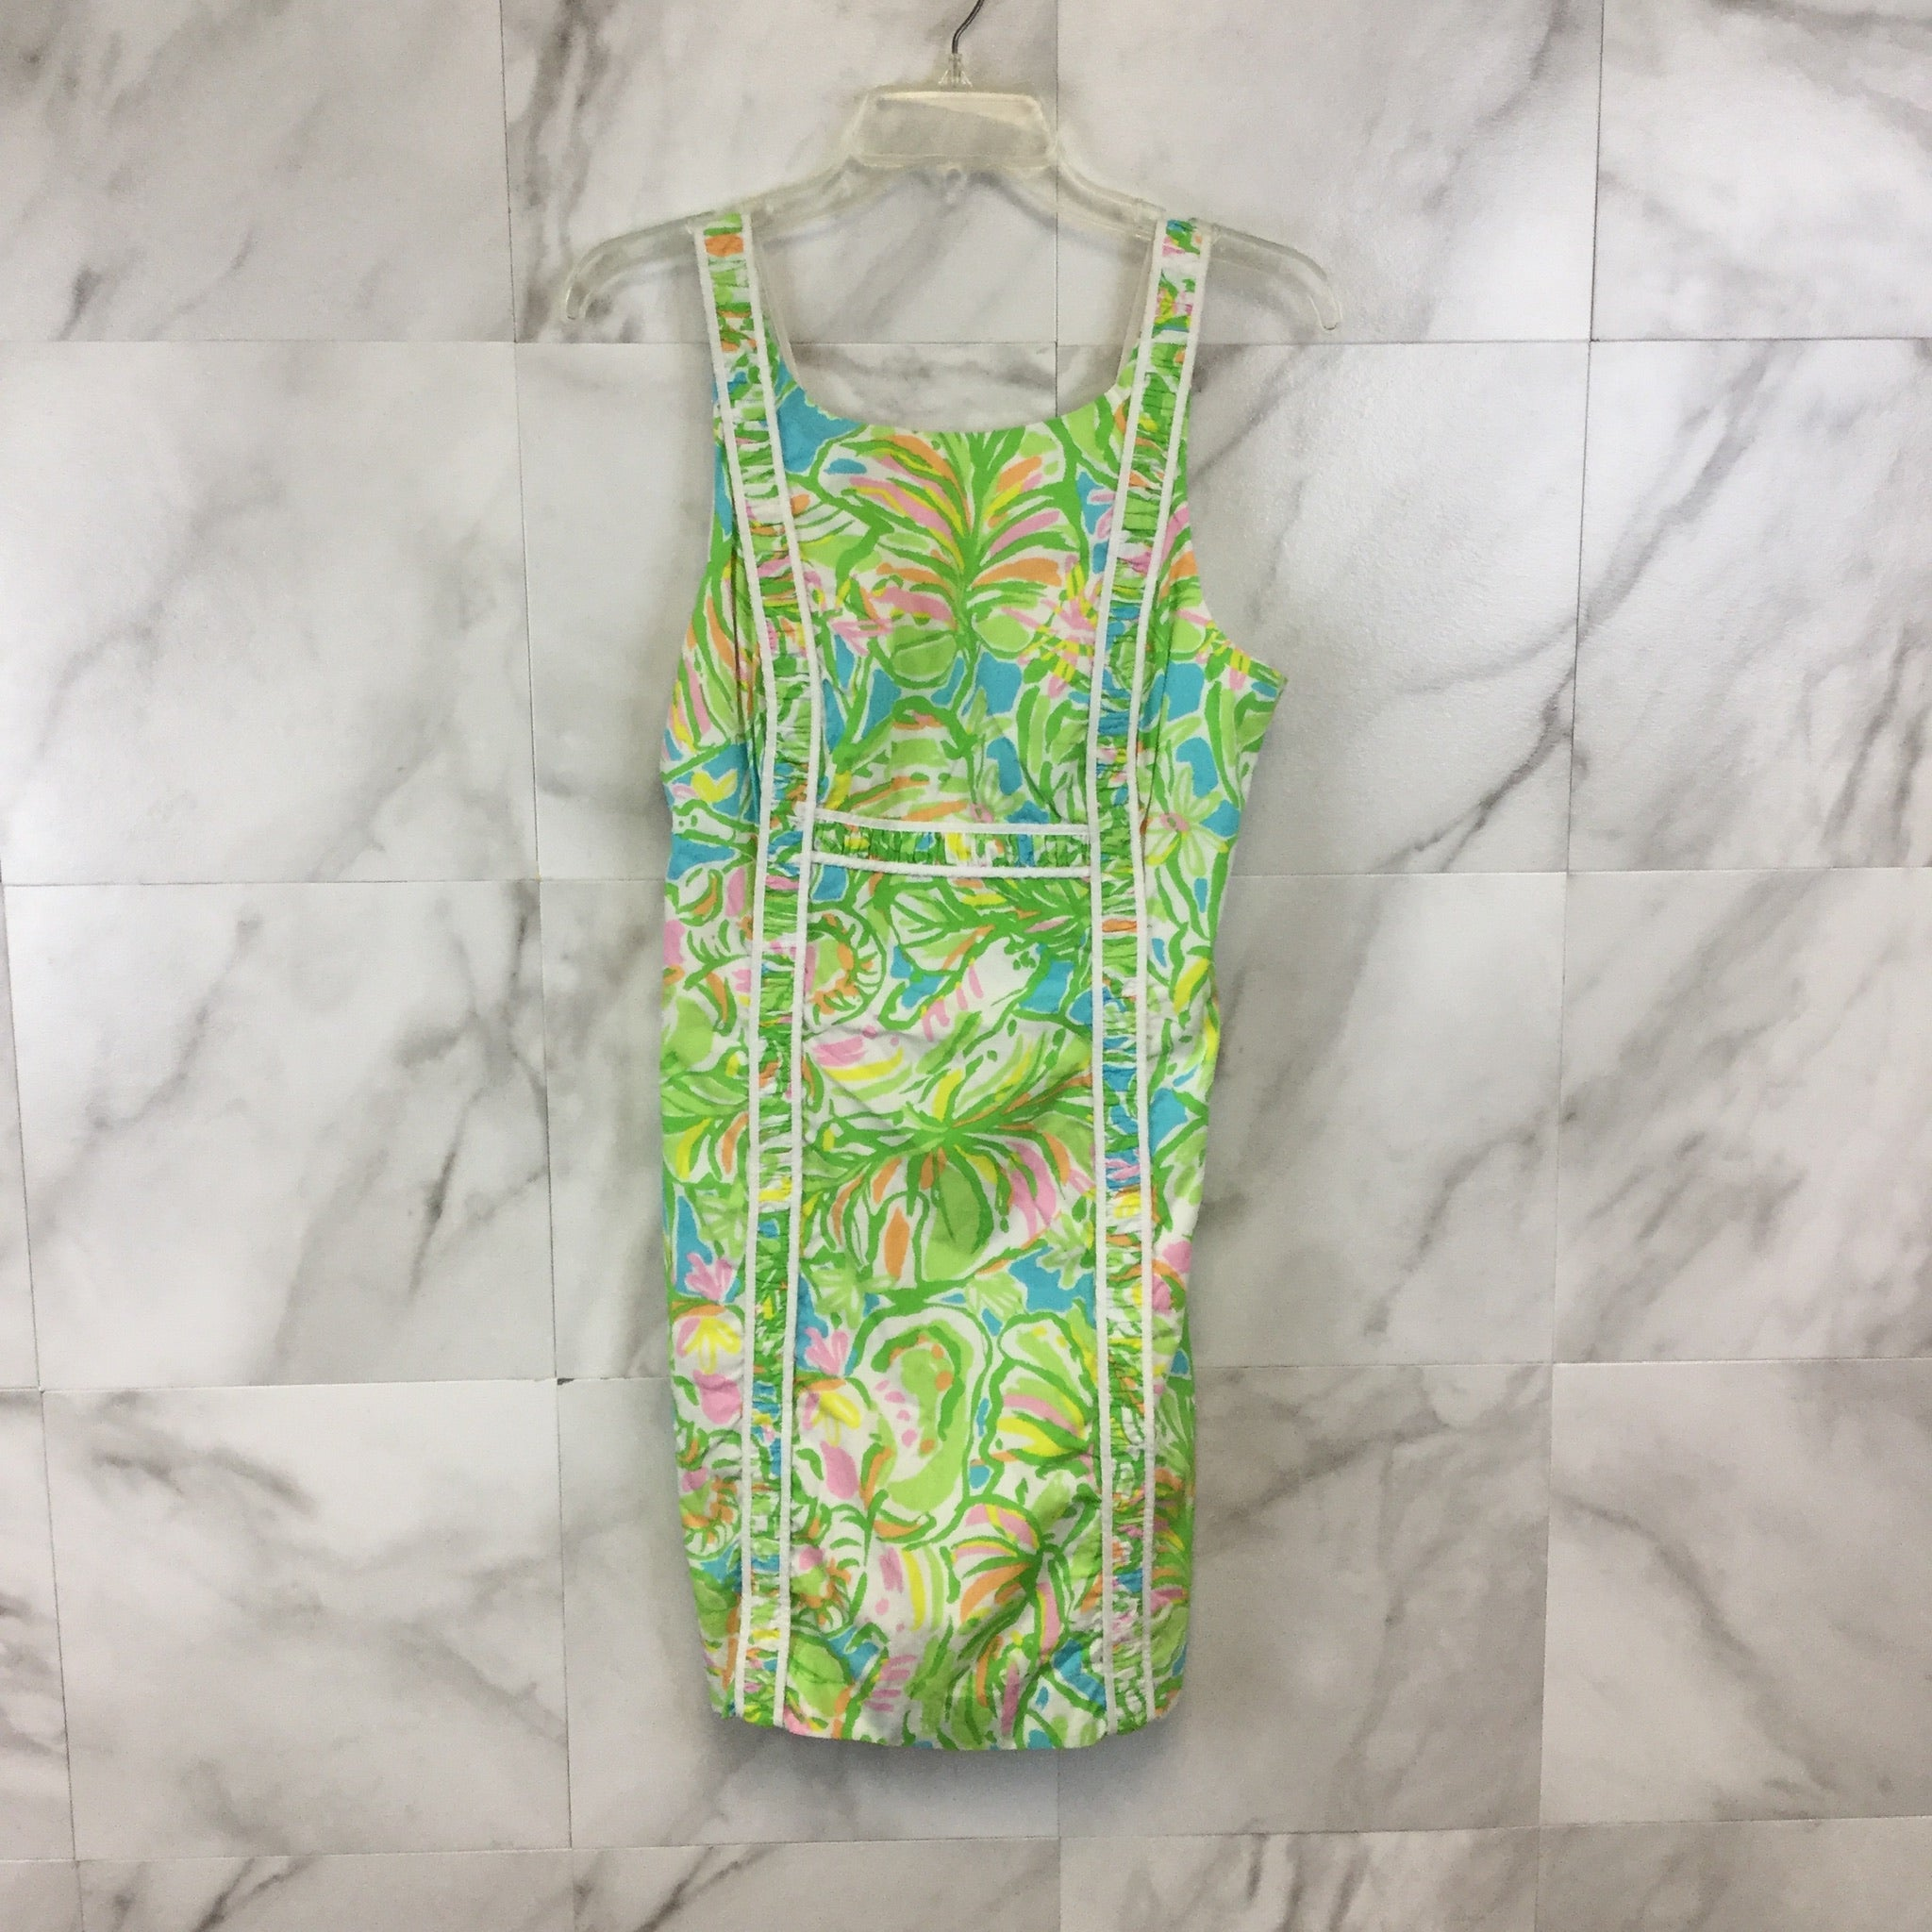 Lilly Pulitzer Fryer Shift Dress in Elephant Ears - Size 6